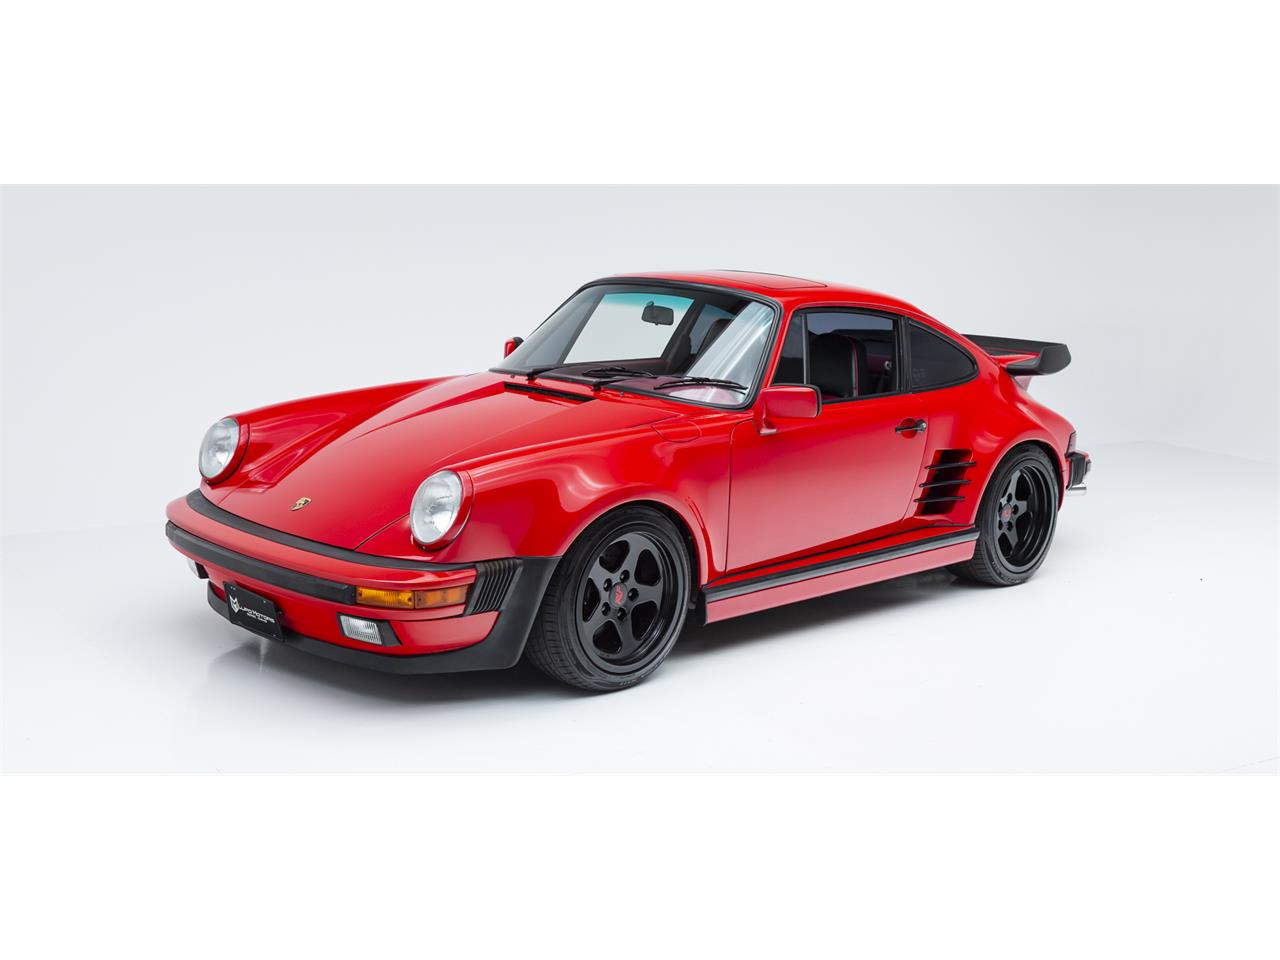 Large Picture of 1979 Porsche 911 Carrera located in Boise Idaho - $49,995.00 - QIAZ